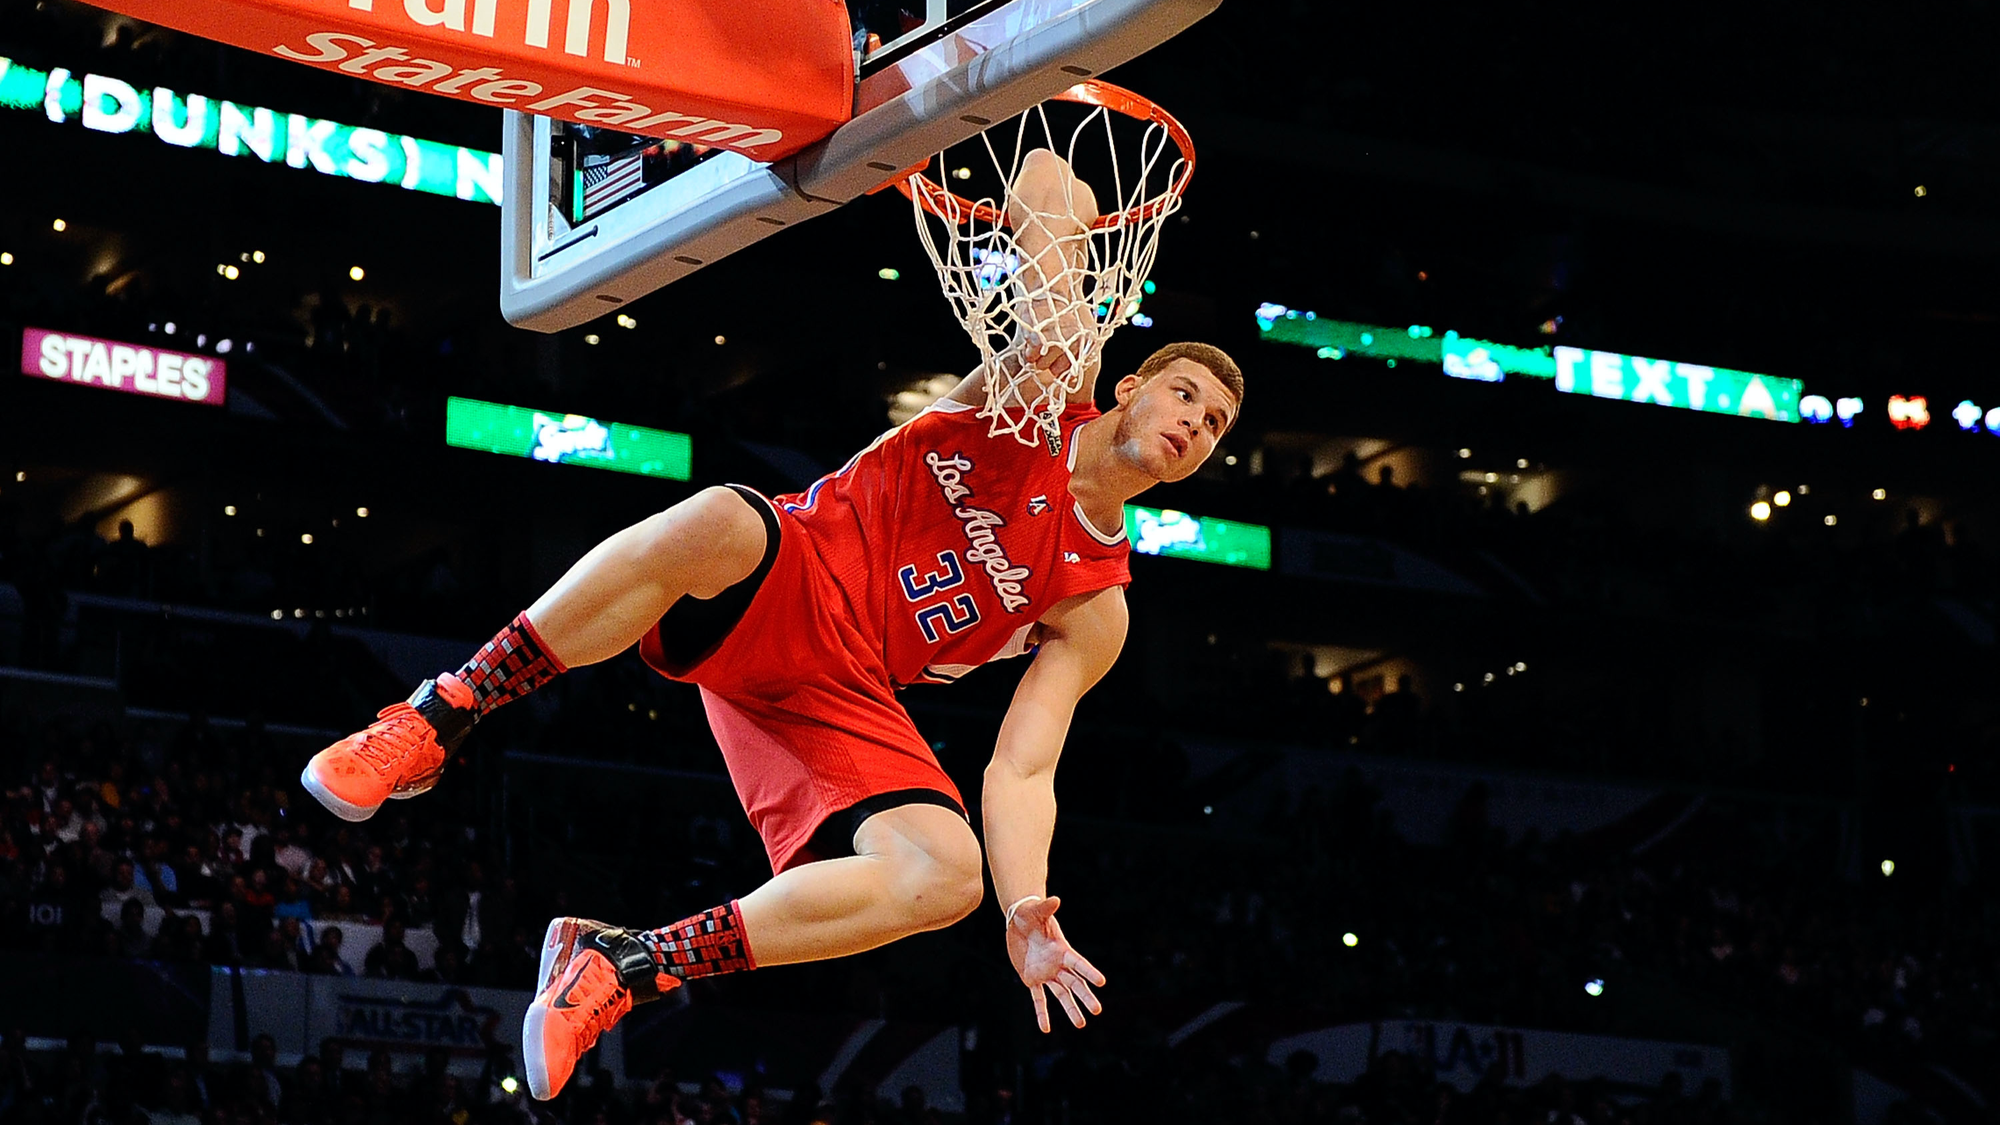 Blake Griffin Odds: Will He Dunk For the Brooklyn Nets?